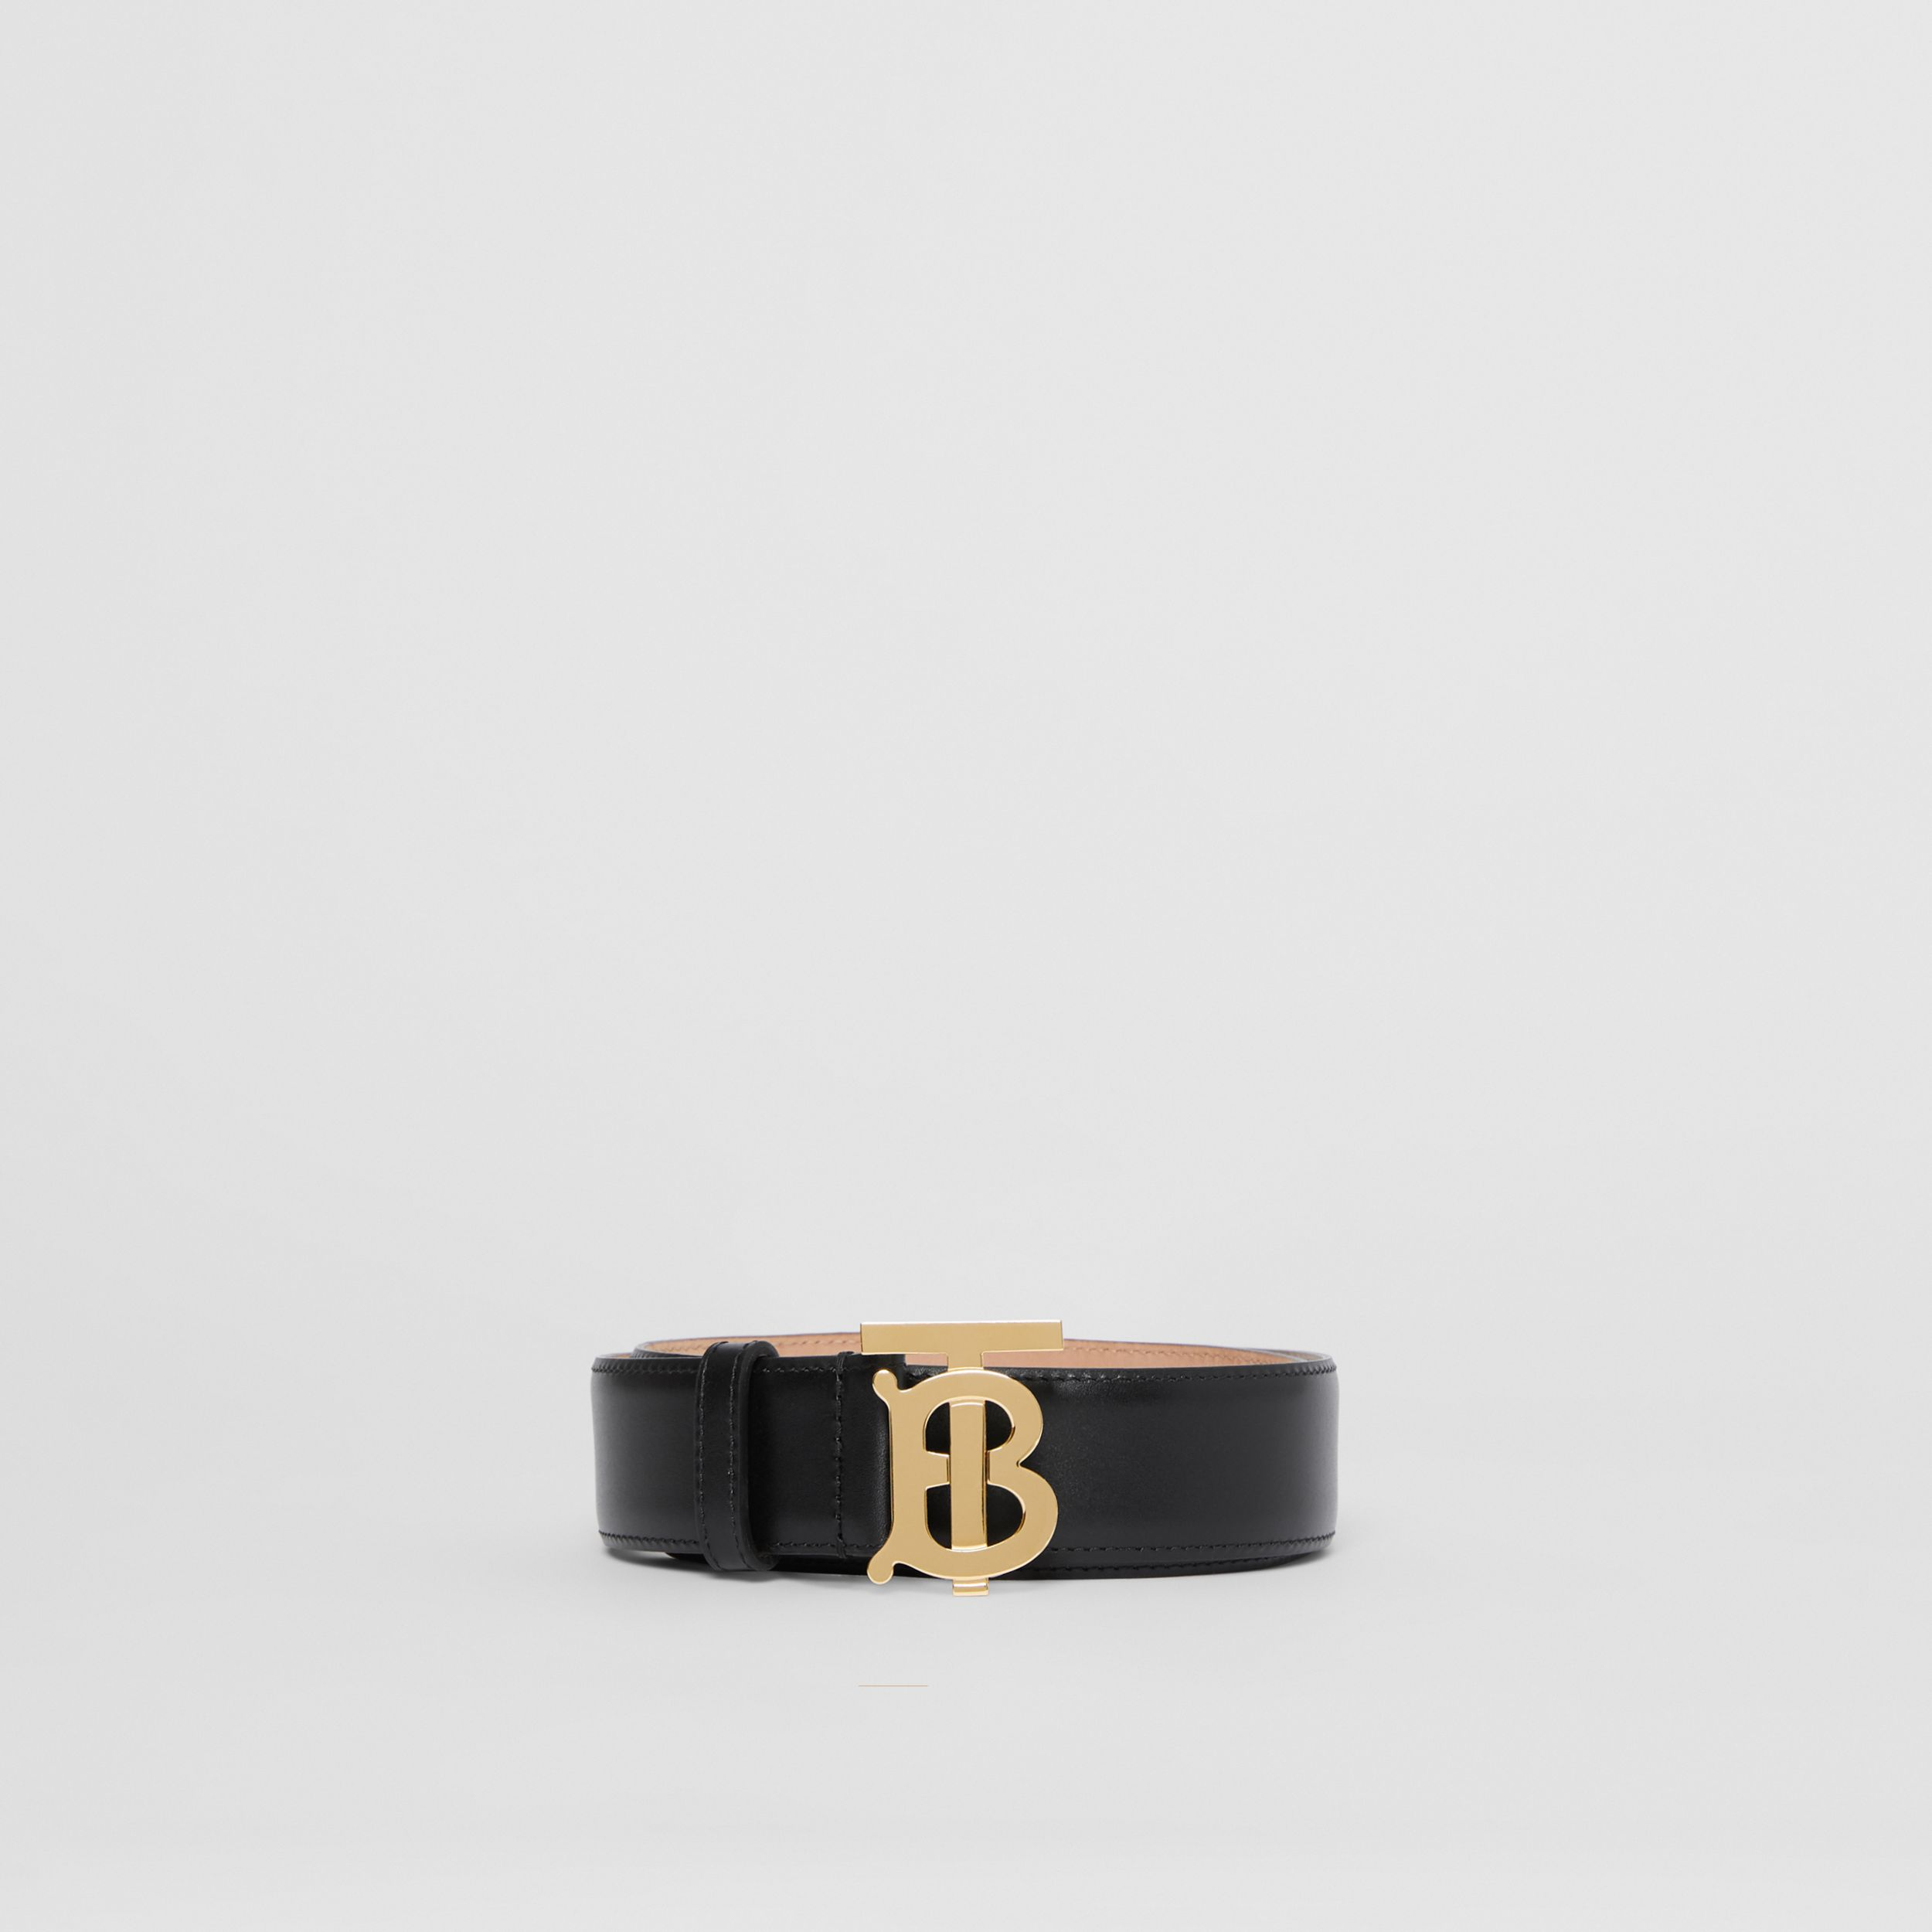 Monogram Motif Leather Belt in Black - Women | Burberry - 4